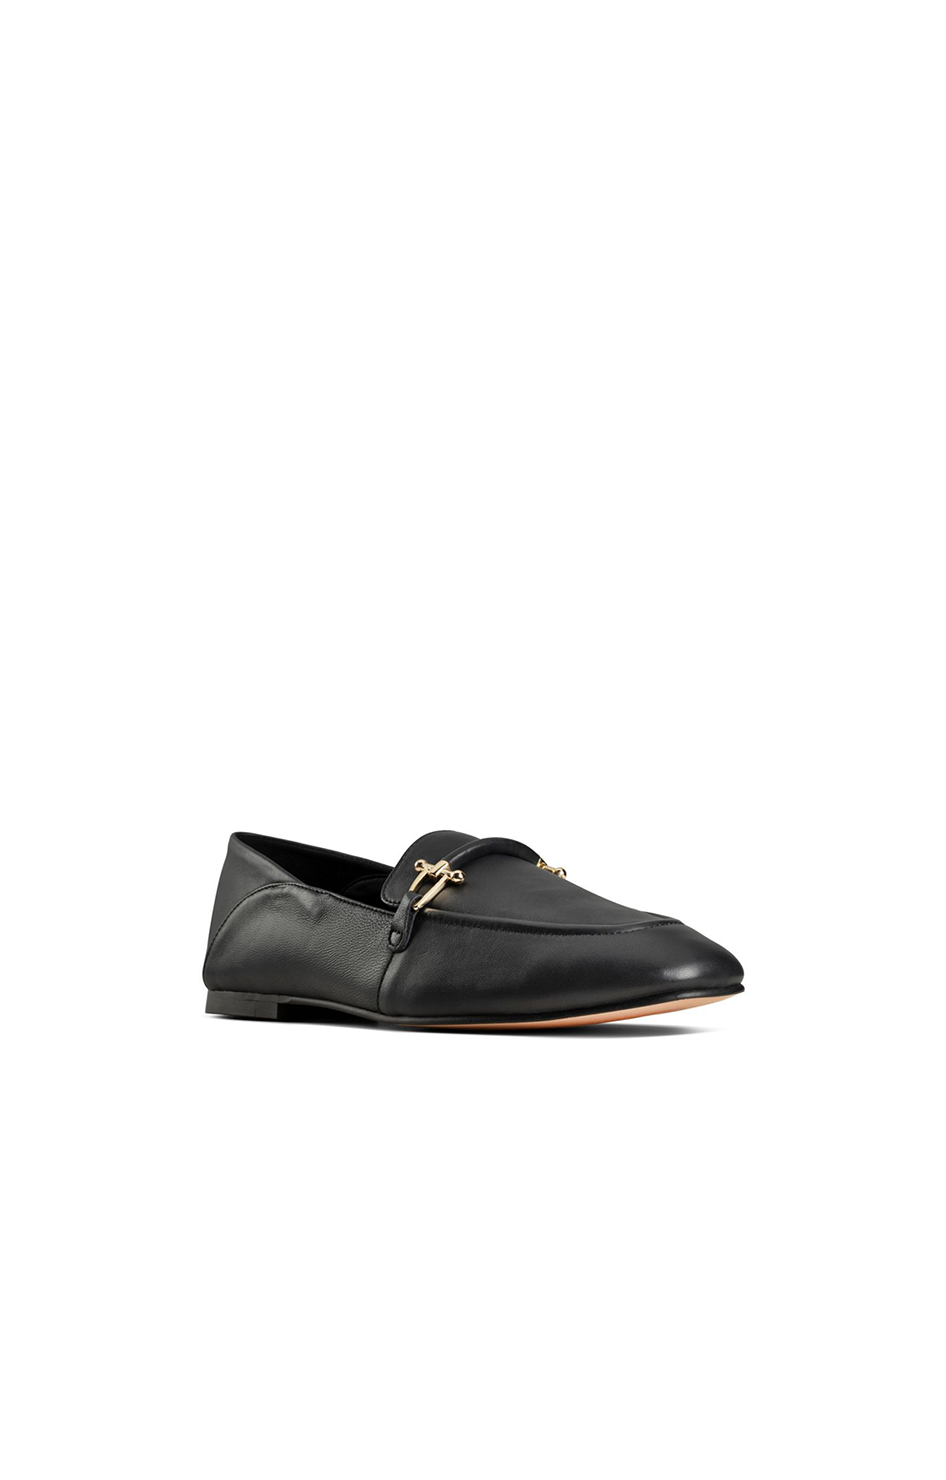 Pure 2 Loafer - Black Leather